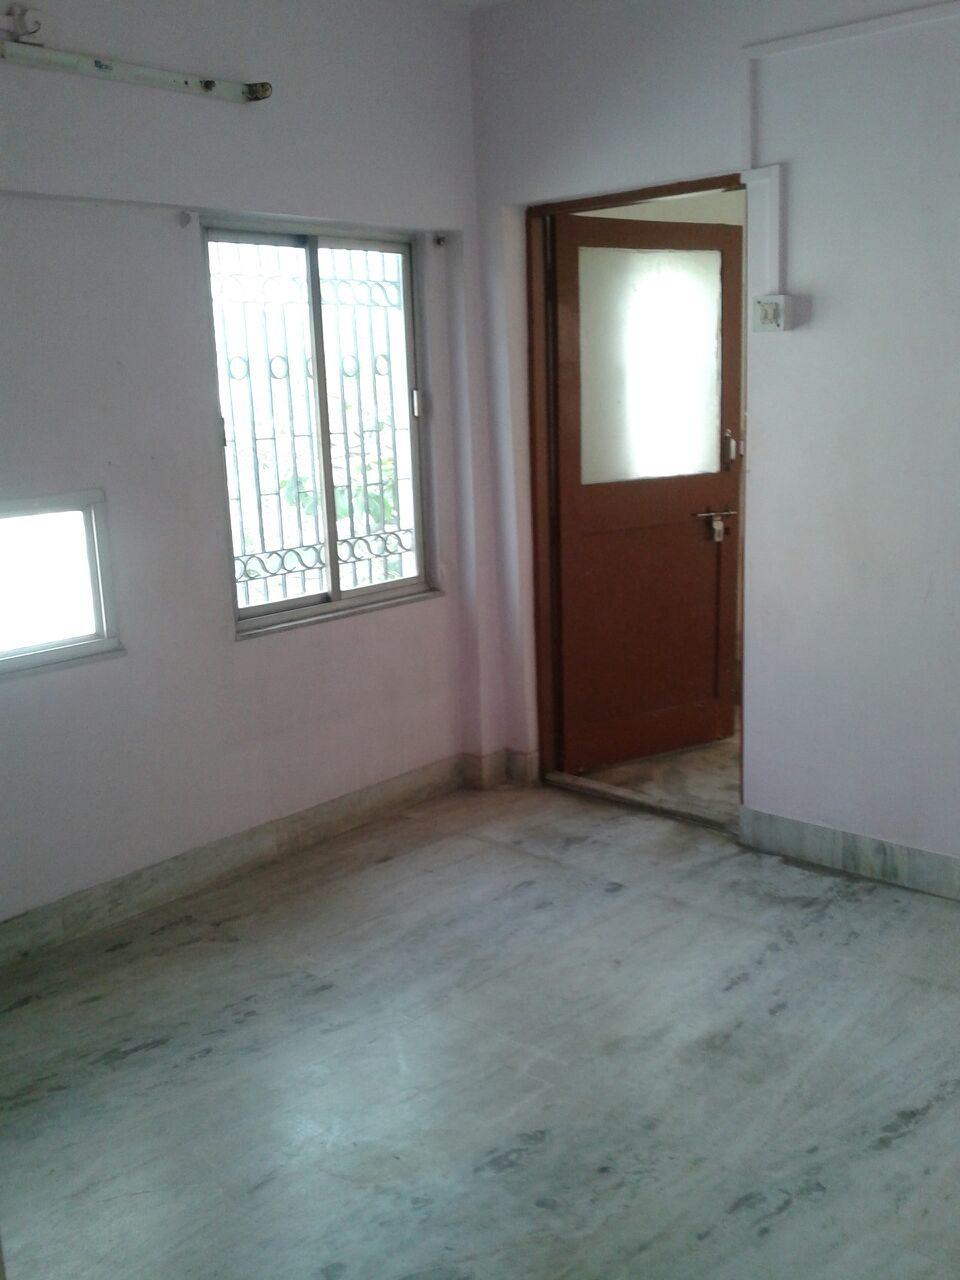 On ground floor rent 14000 in ambazary layout